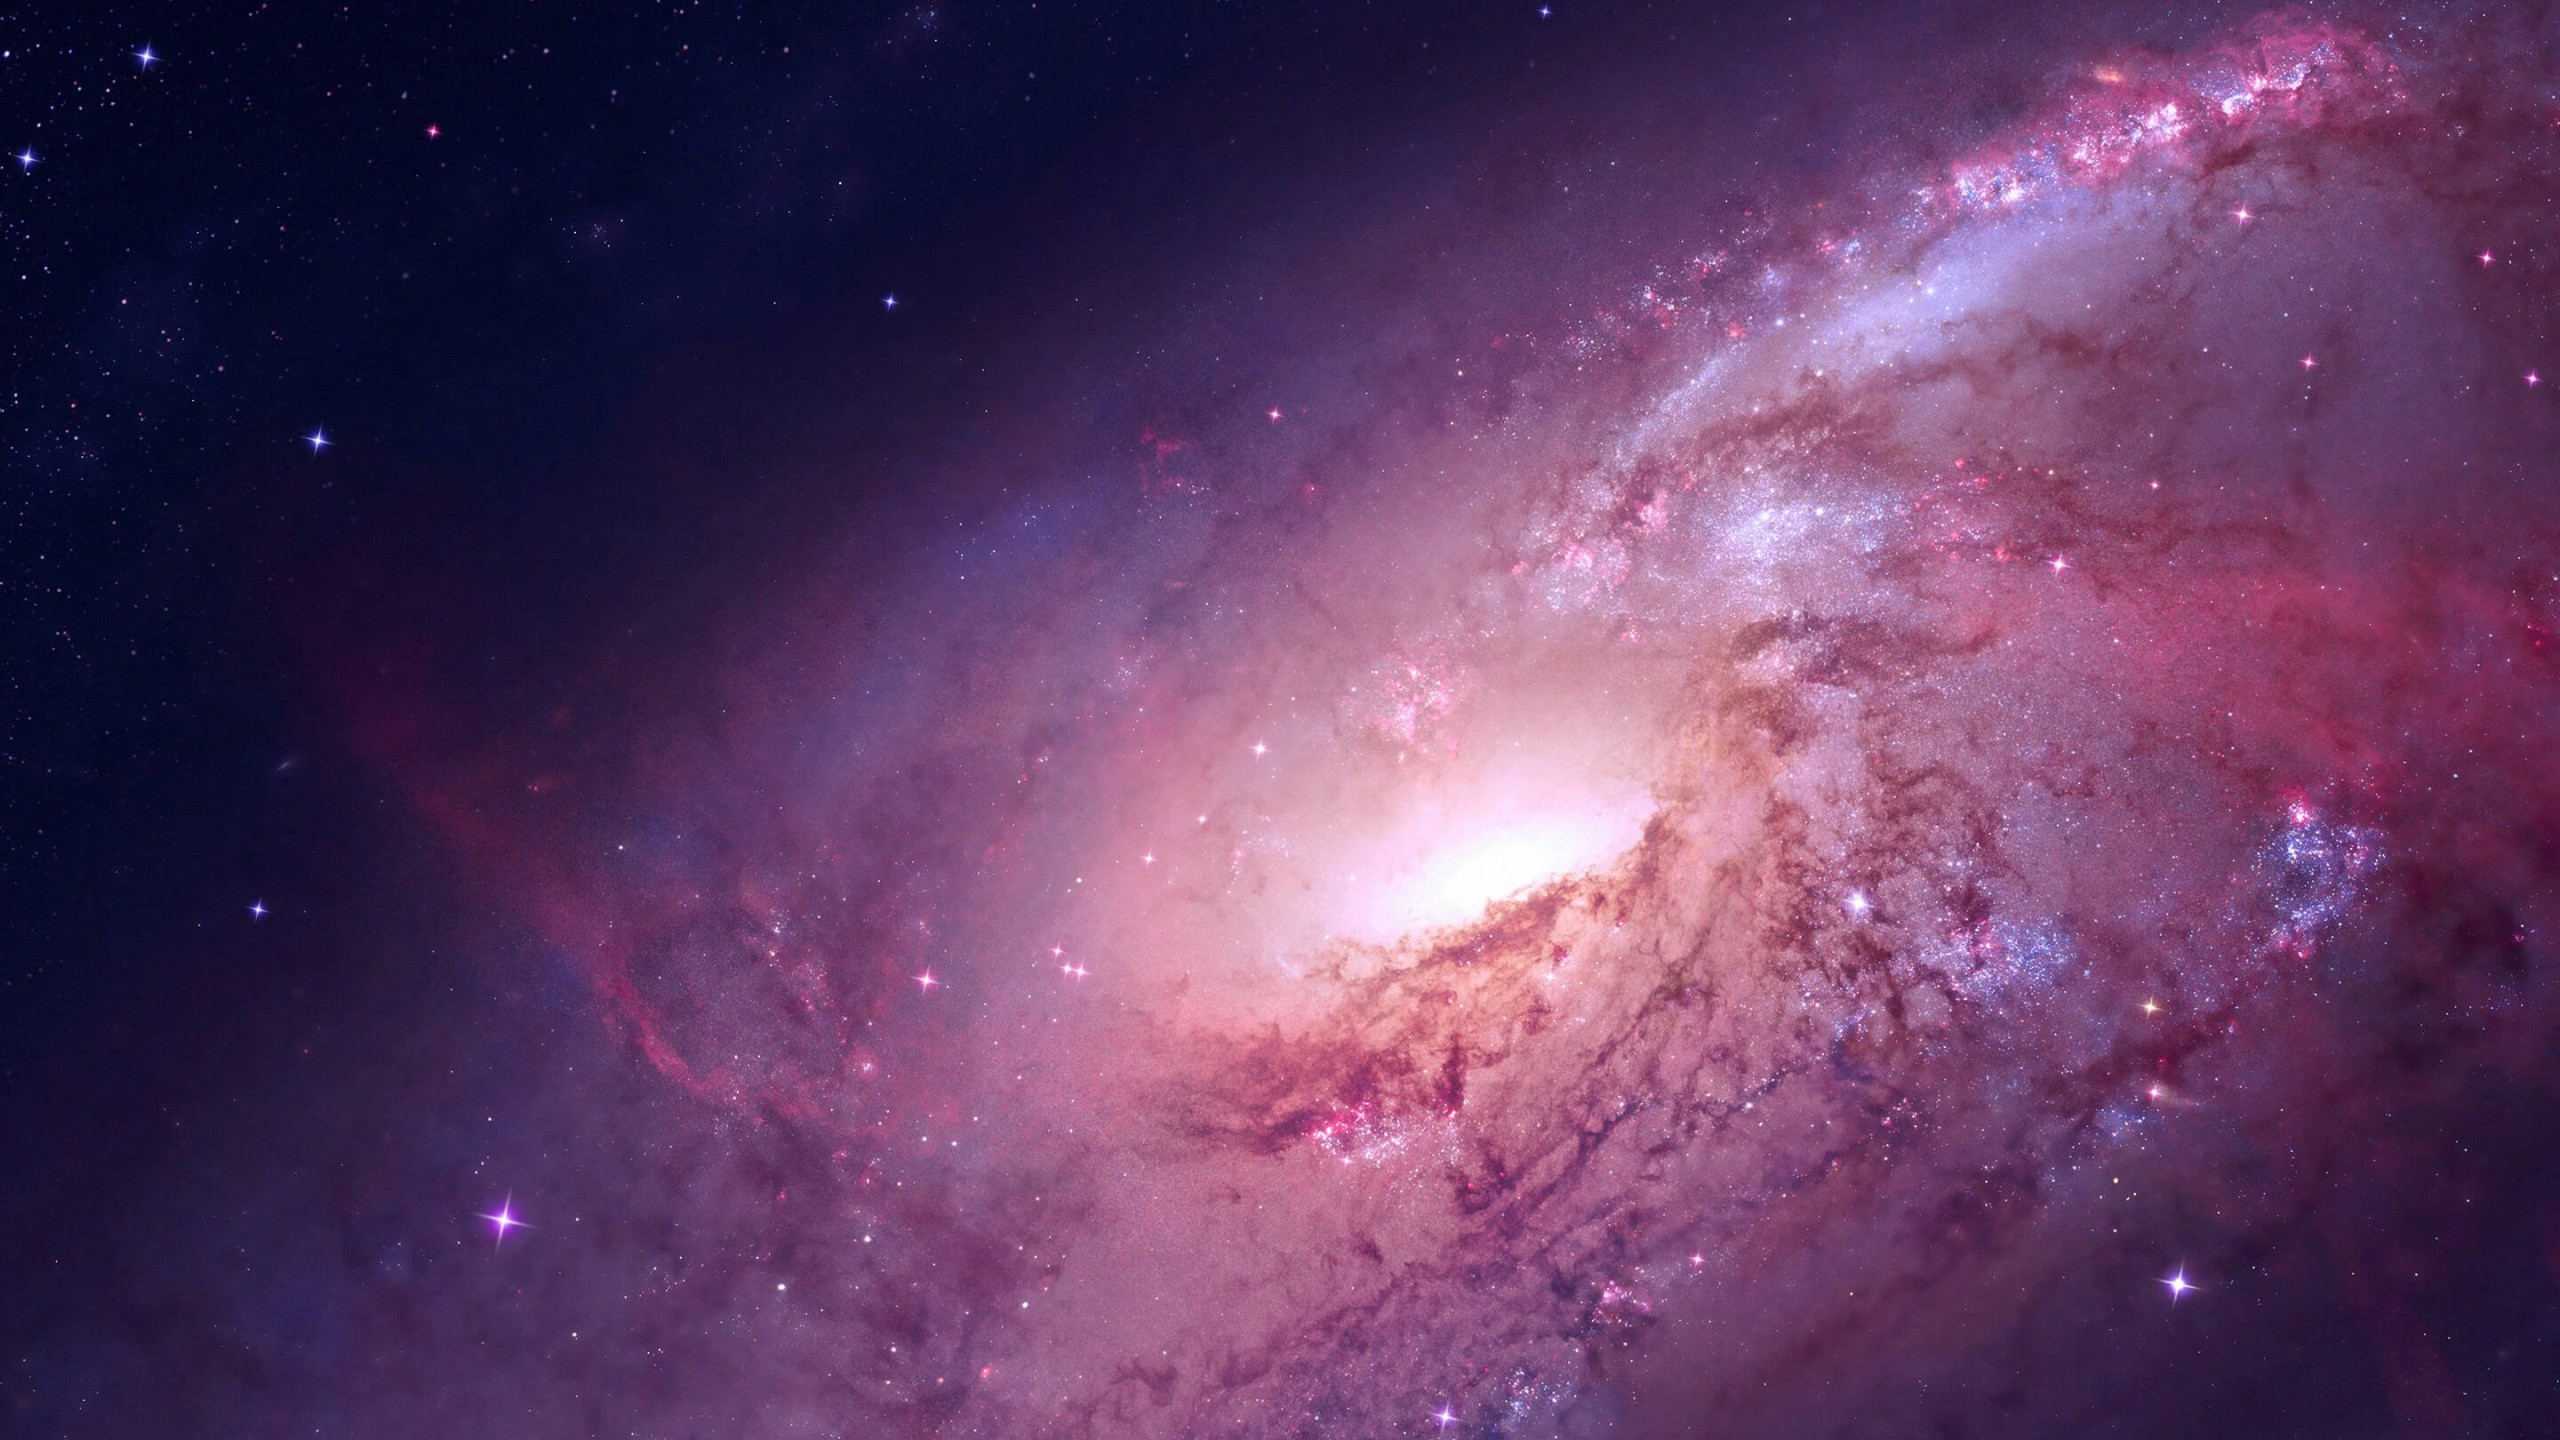 Galaxy M106 Wallpaper for Social Media YouTube Channel Art